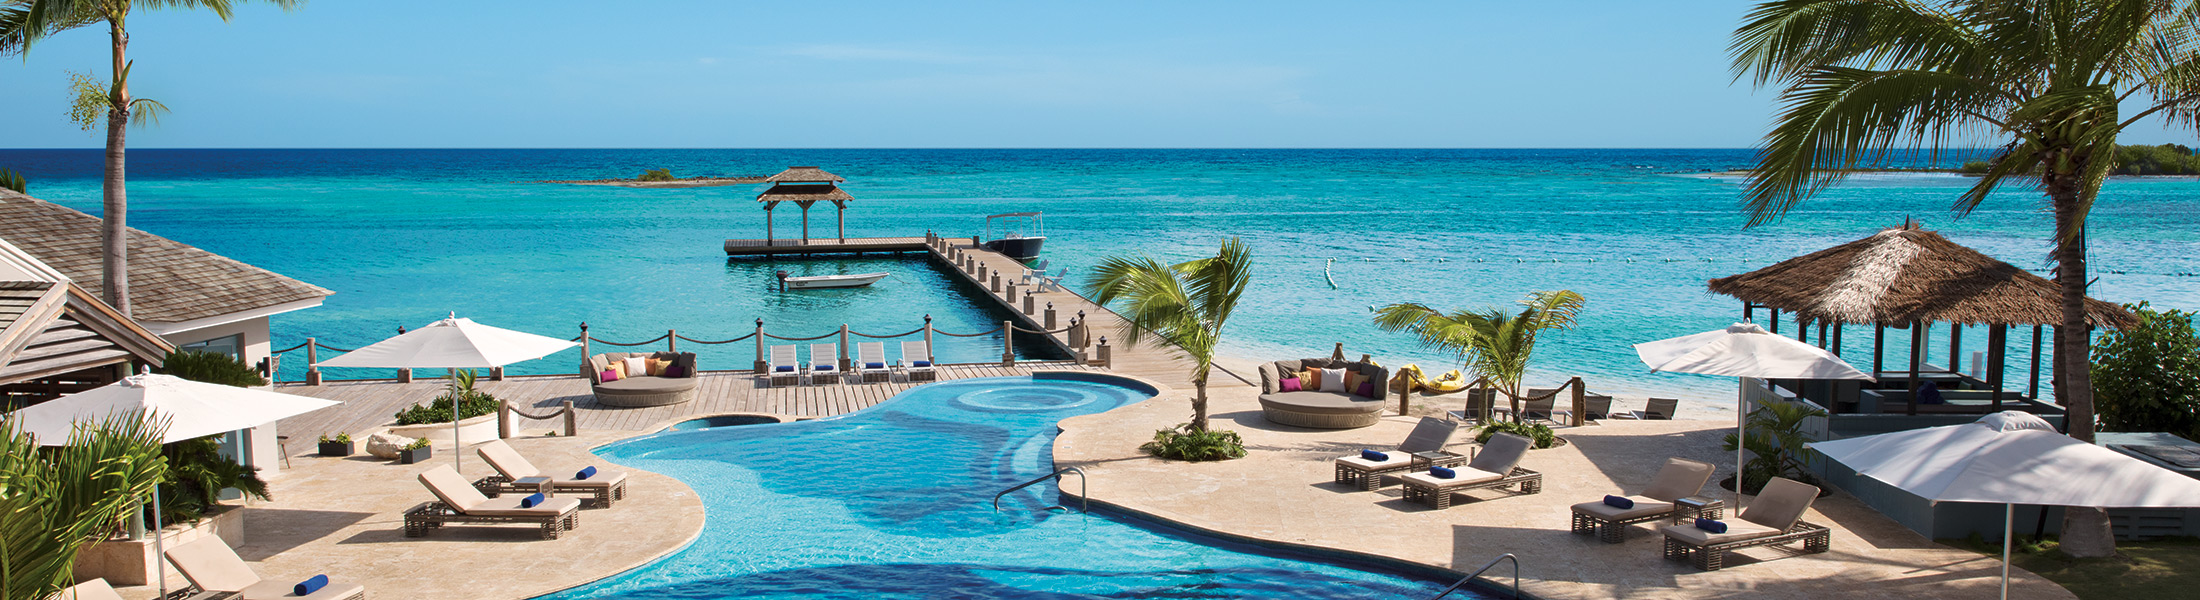 Aerial view of the infinity pool at Zoetry Montego Bay